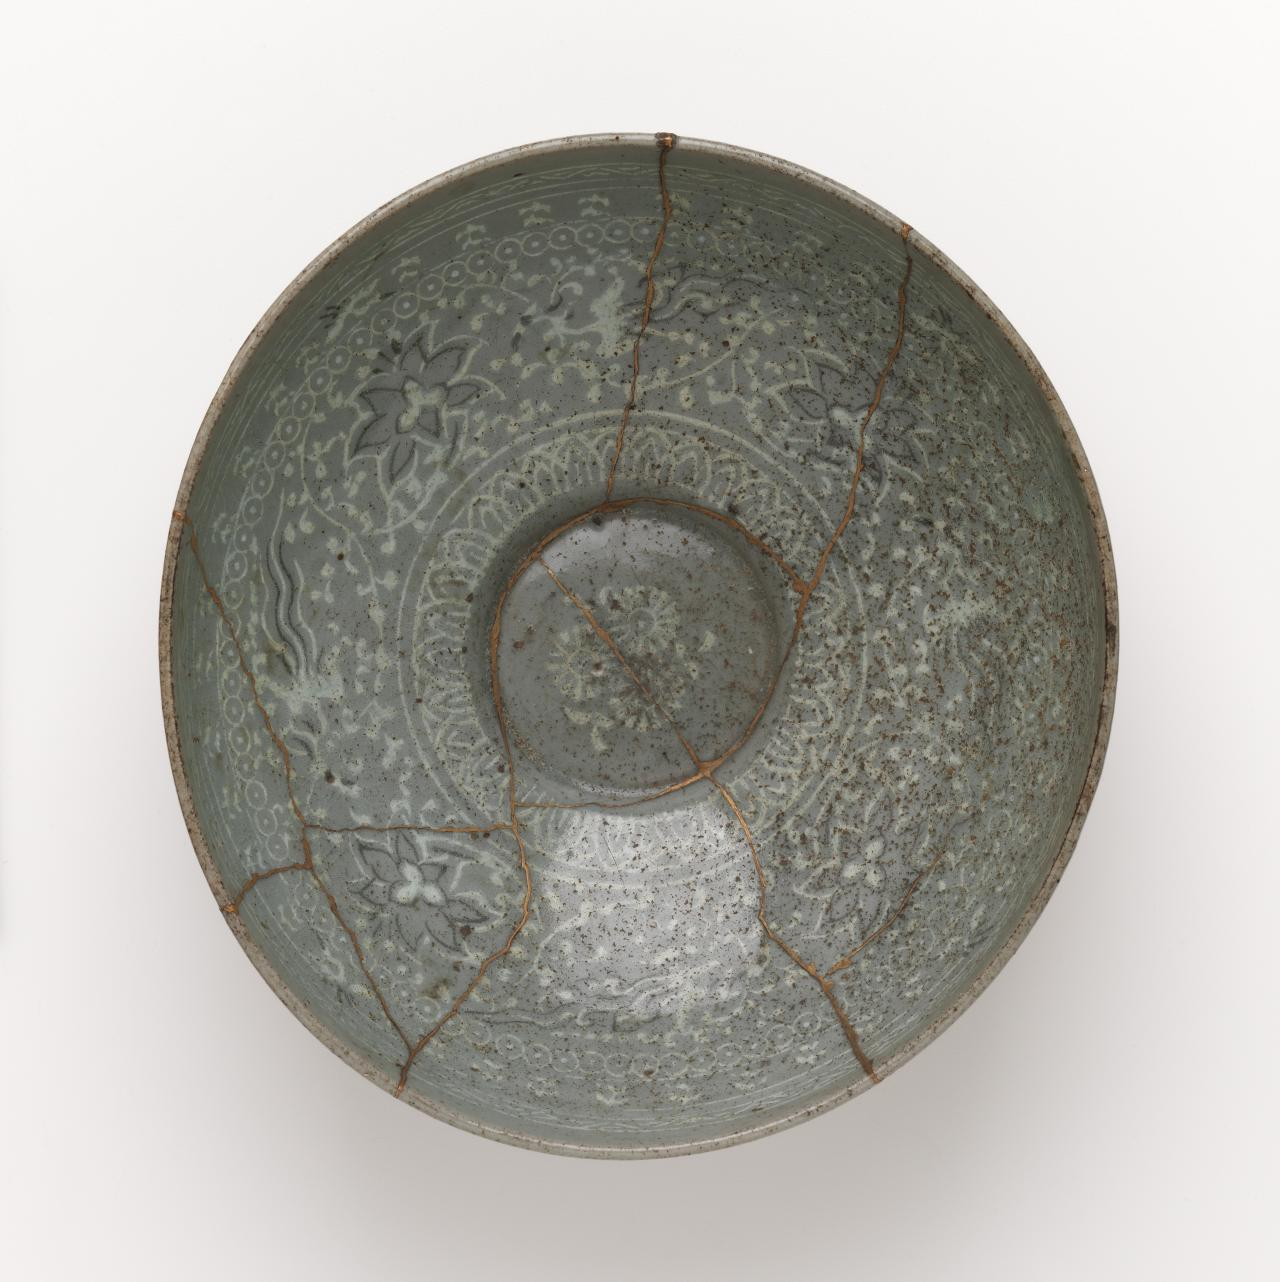 Bowl with inlaid phoenix, crane and floral design